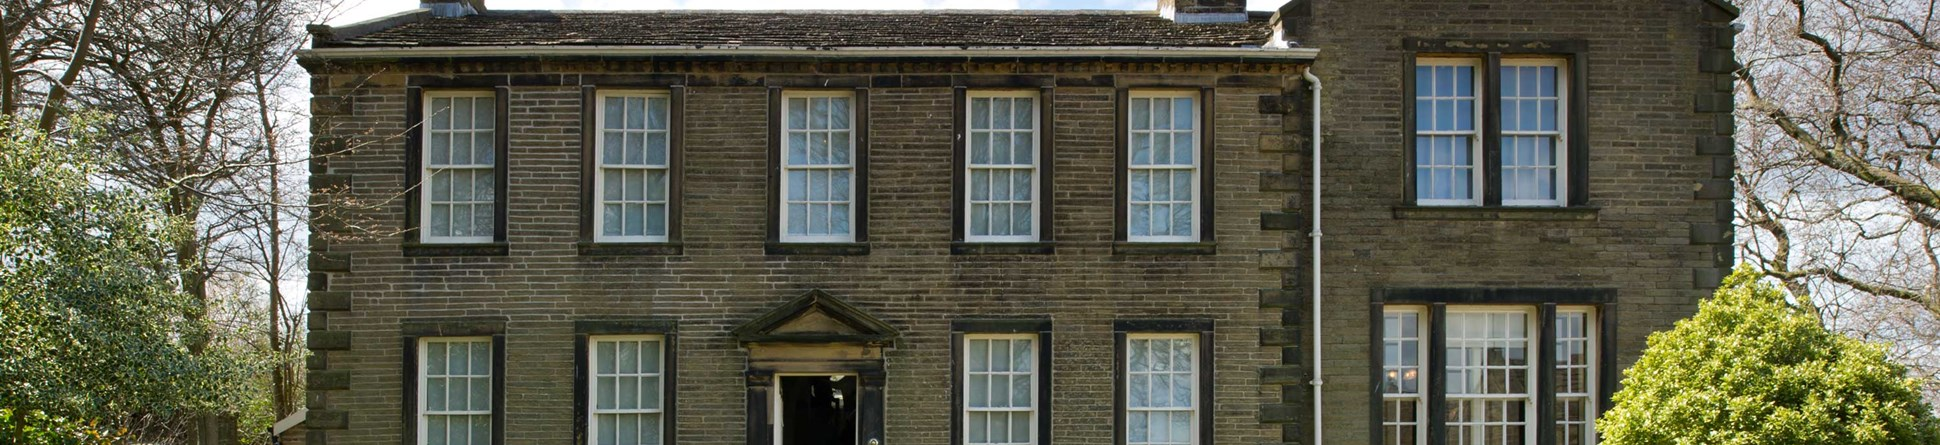 Image of the Brontë Parsonage in Haworth which was home to Patrick Brontë and his three literary daughters Charlotte, Emily and Anne from 1820 onwards.